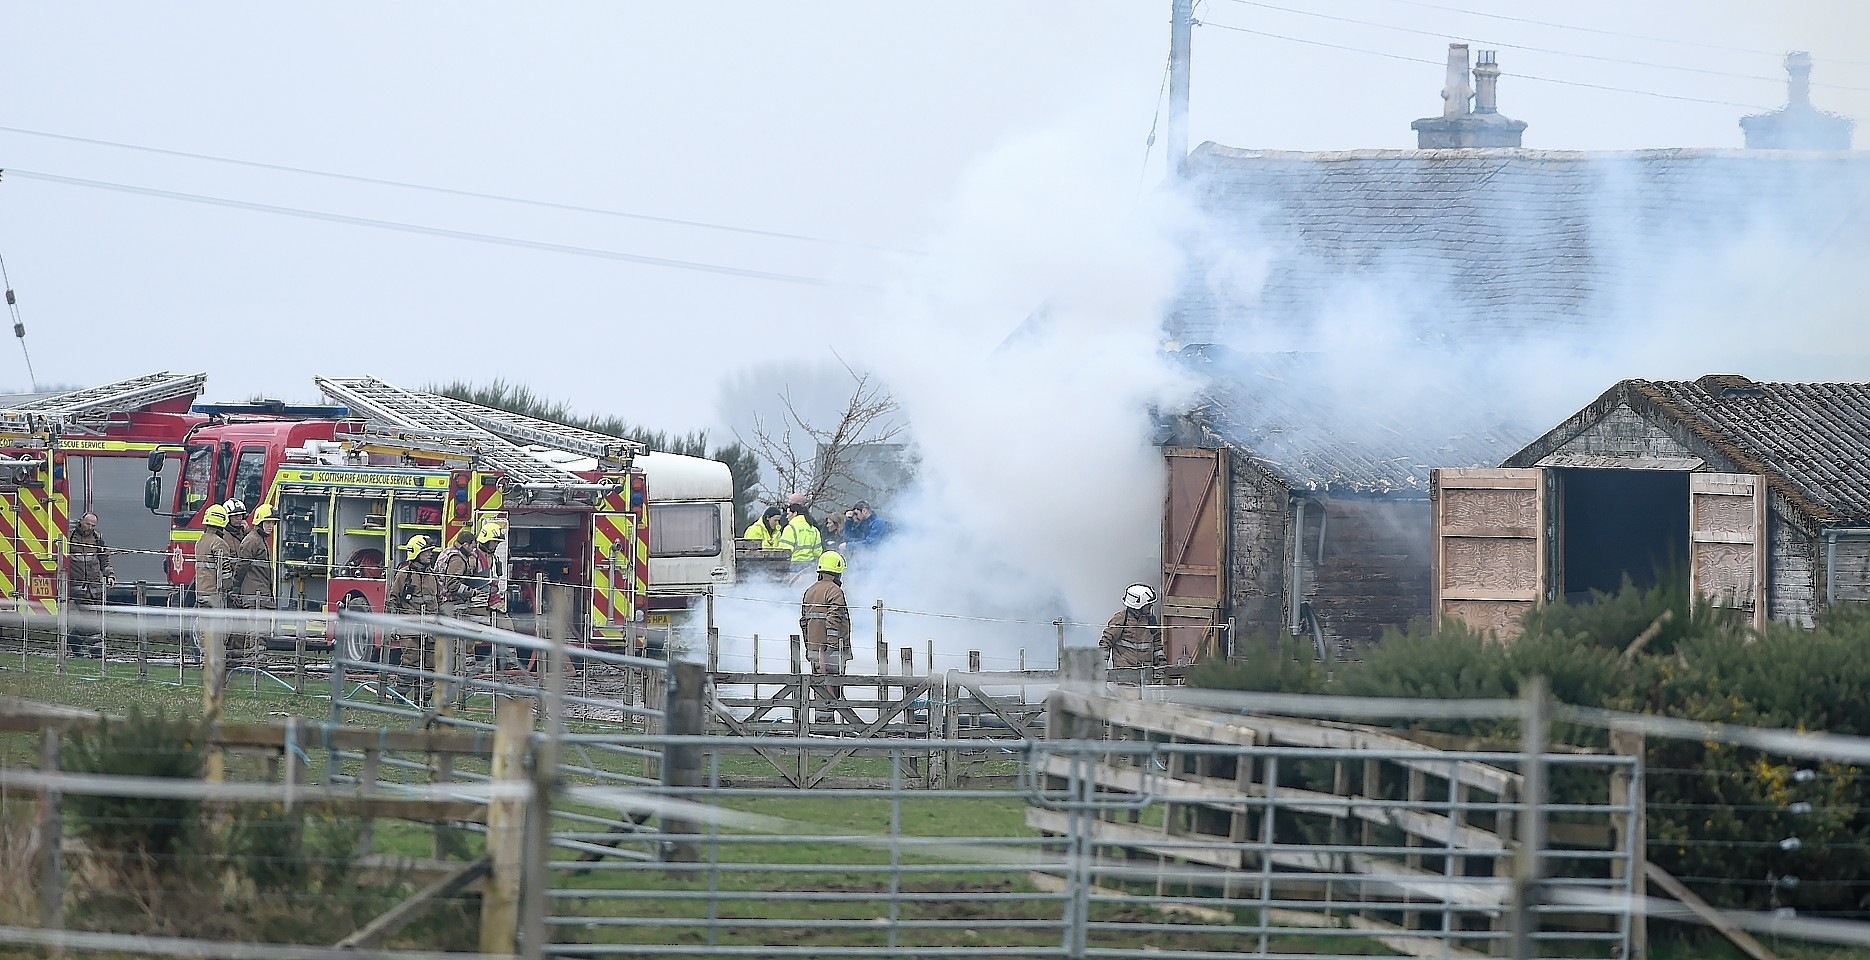 Firefighters at the scene of the blaze at a farm near Invergordon